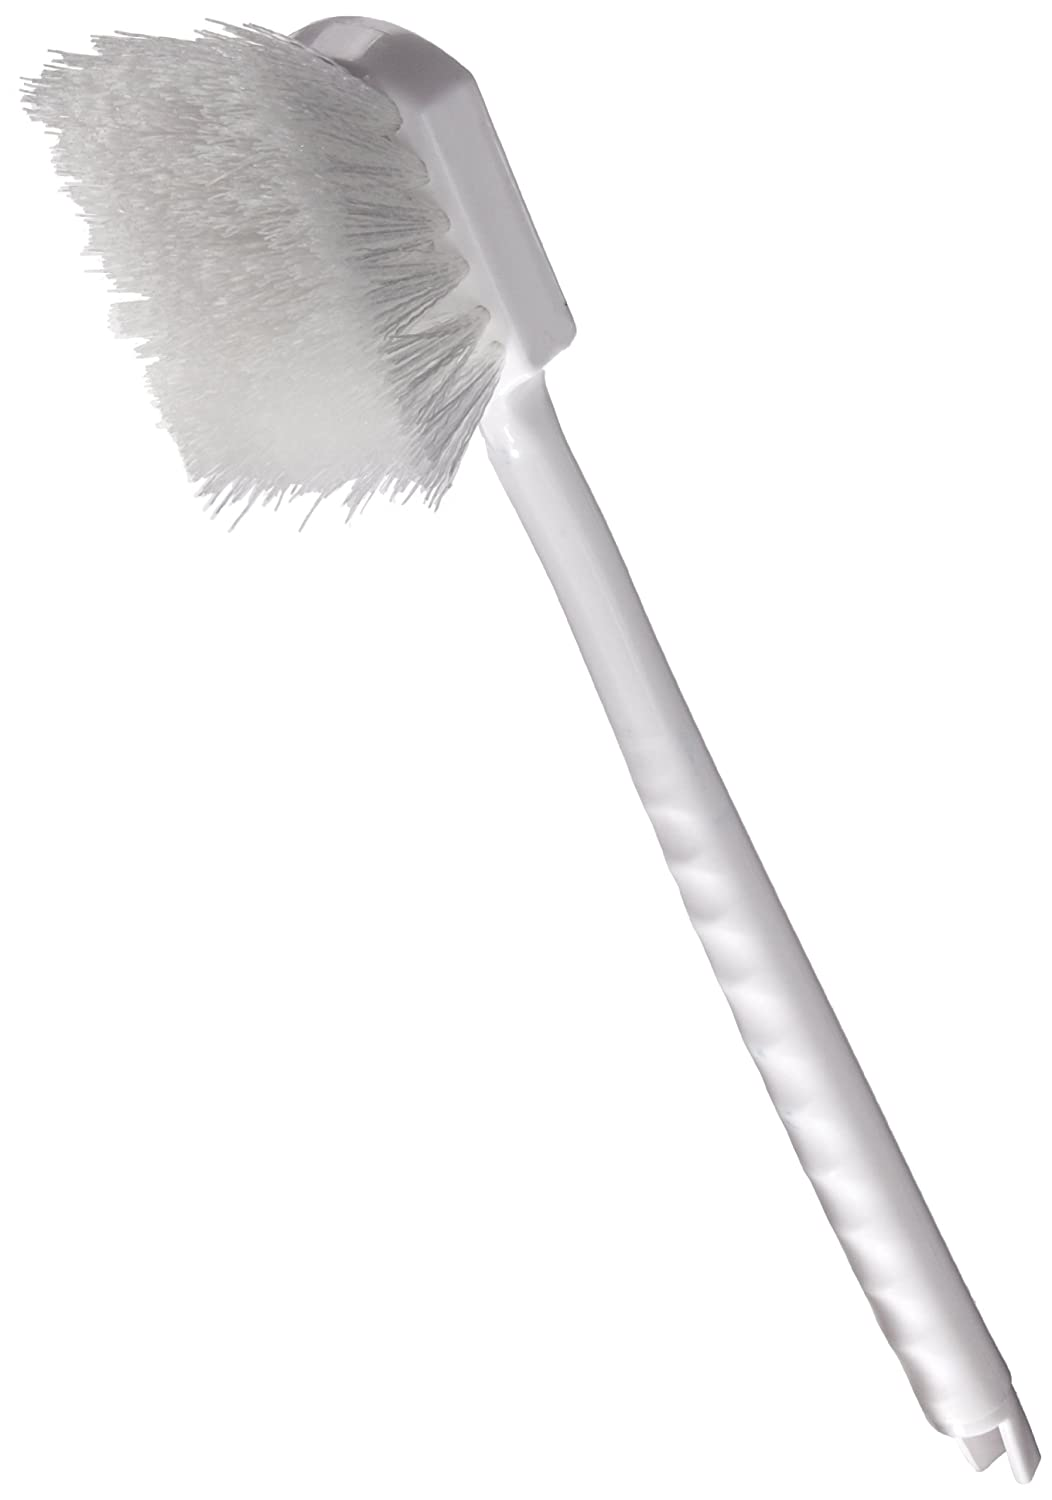 Weiler Nylon Utility Scrub Brush with Plastic Handle